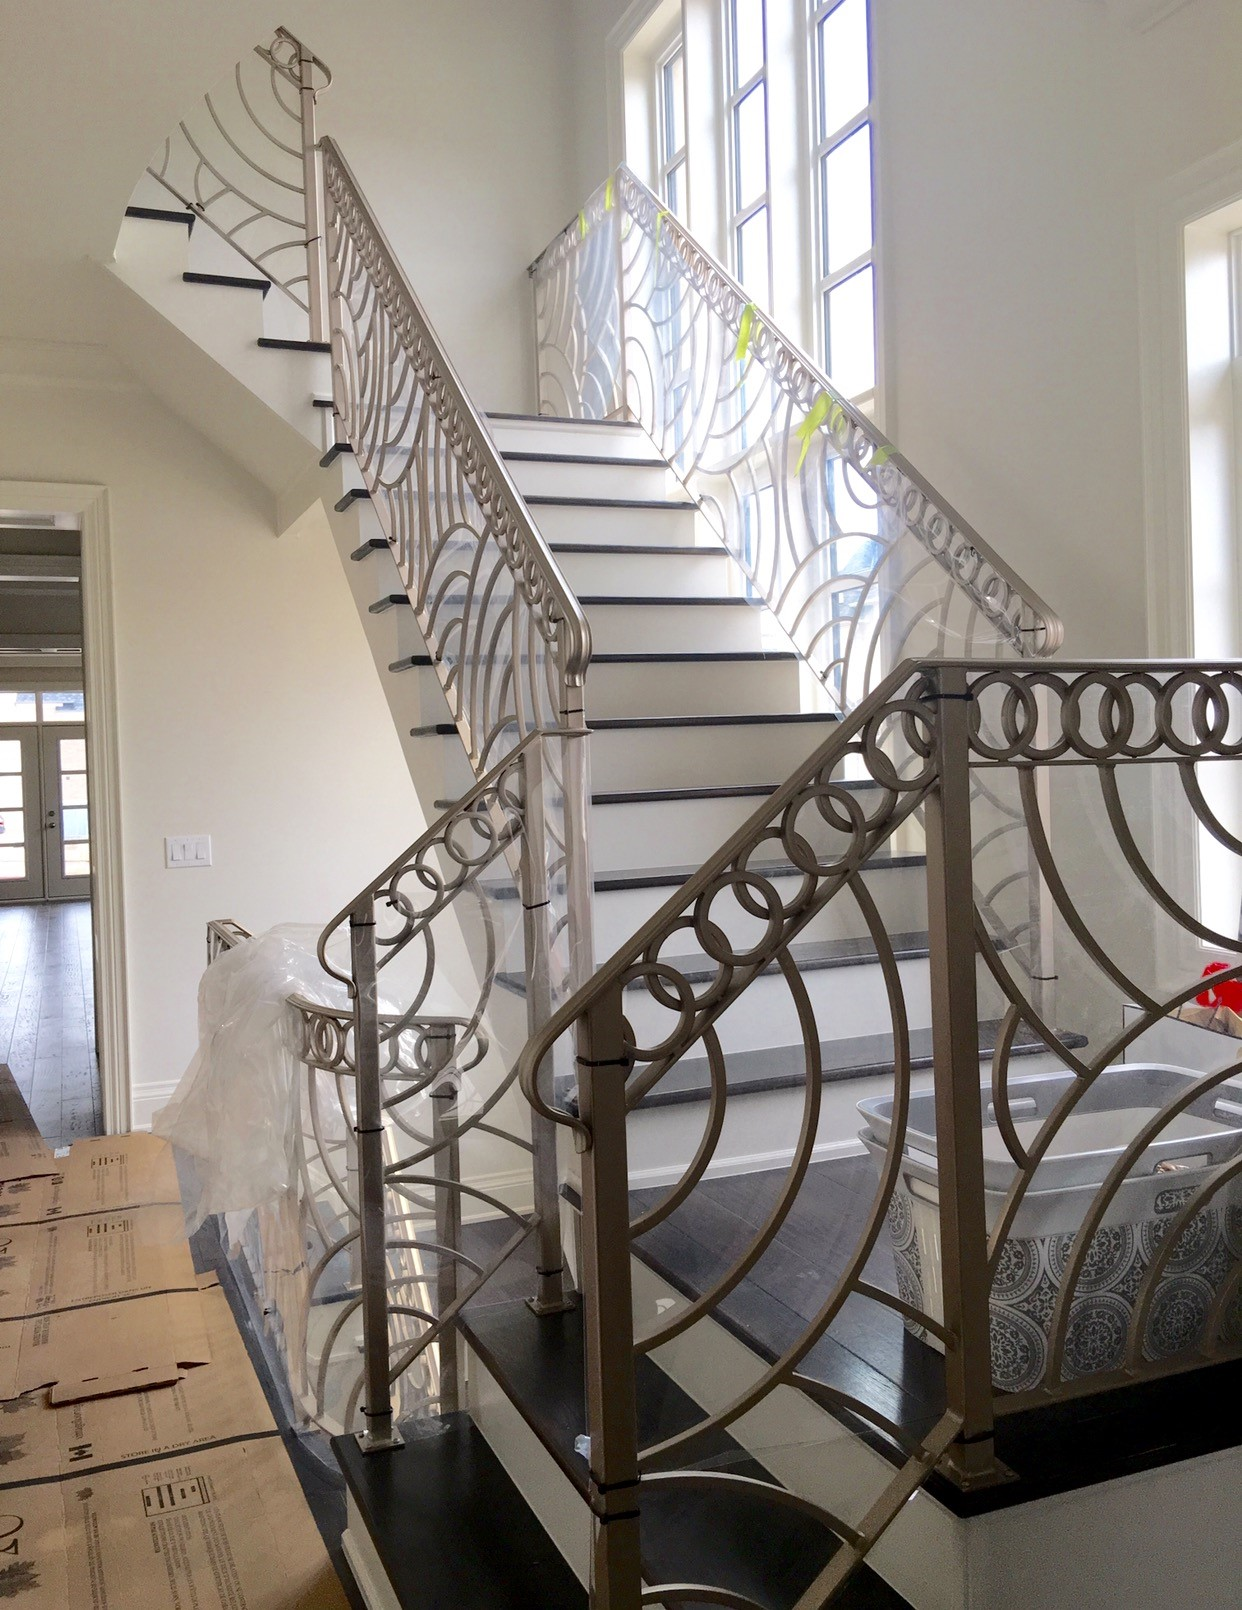 Top Toronto Interior Design Professional Creates Custom Staircase Railing